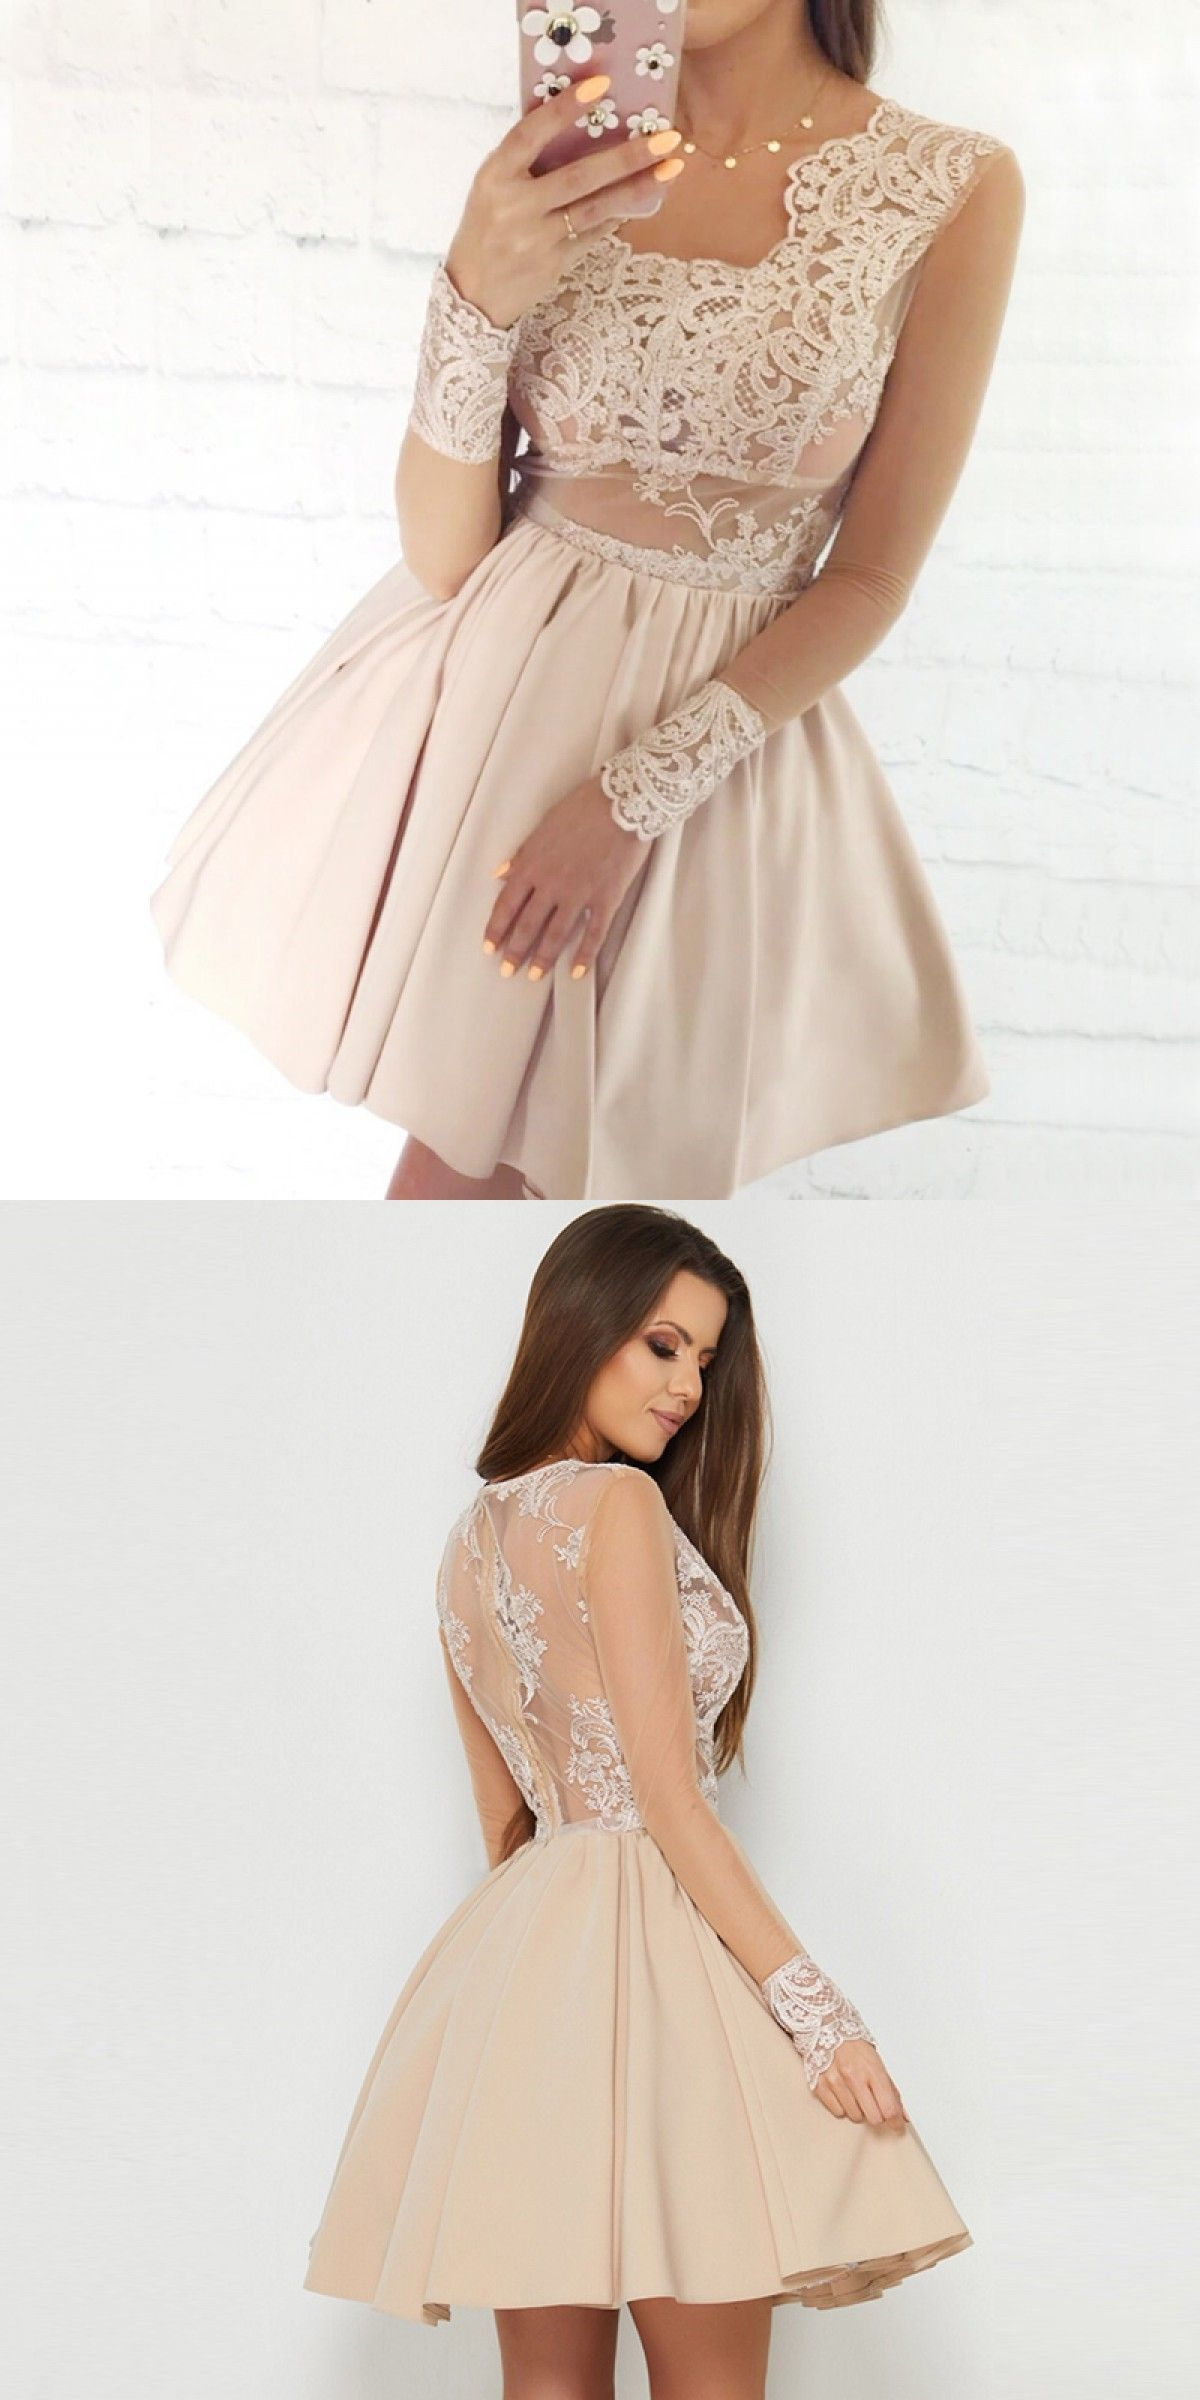 Elegant Homecoming Dress With Lace Cute Hoco Dress With Long Sleeves Short Prom Party Dresses Homecomingdress Pr 15 Vestidos Vestidos Vestido Festa Curto [ 2400 x 1200 Pixel ]